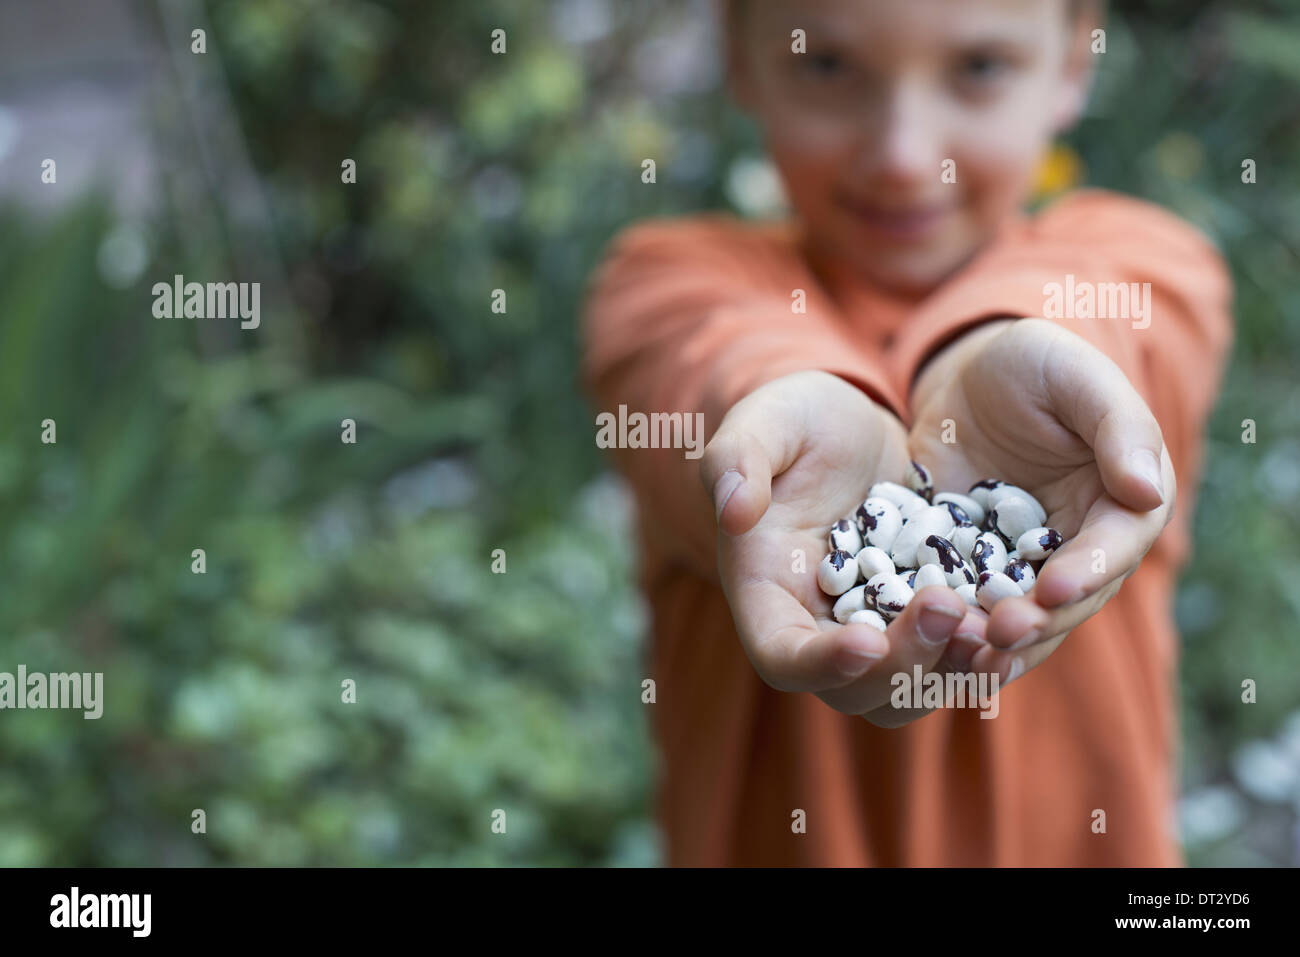 A young boy holding out a handful of dried beans - Stock Image